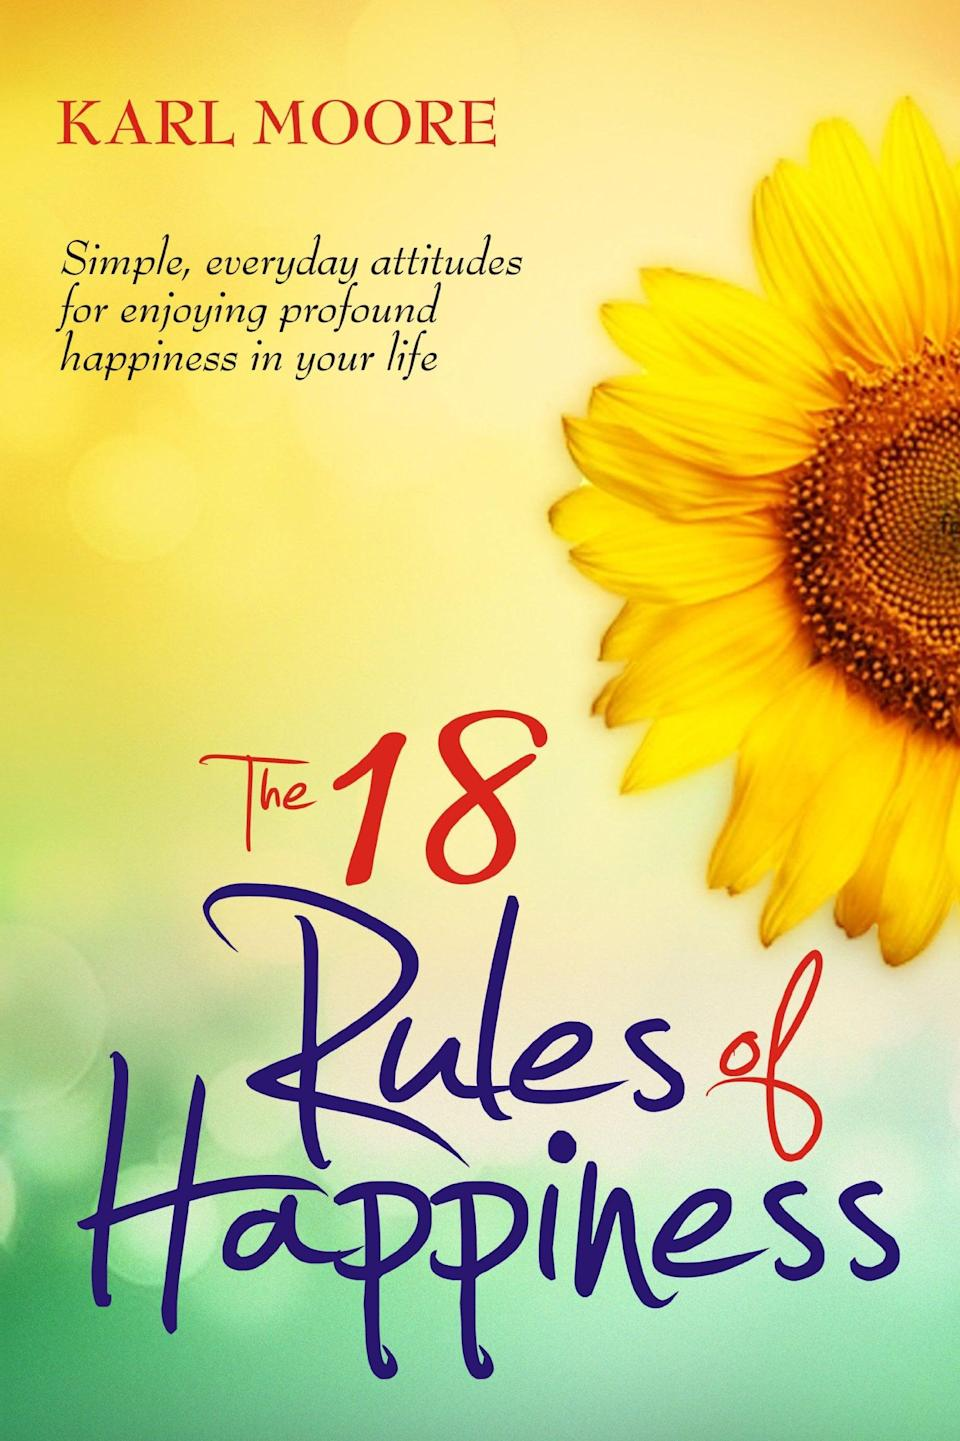 """<p>A self-described """"mini-course in mega happiness,"""" <span>The 18 Rules of Happiness Pocket Guide</span> reveals simple ways to become more joyful in everyday life. </p>"""